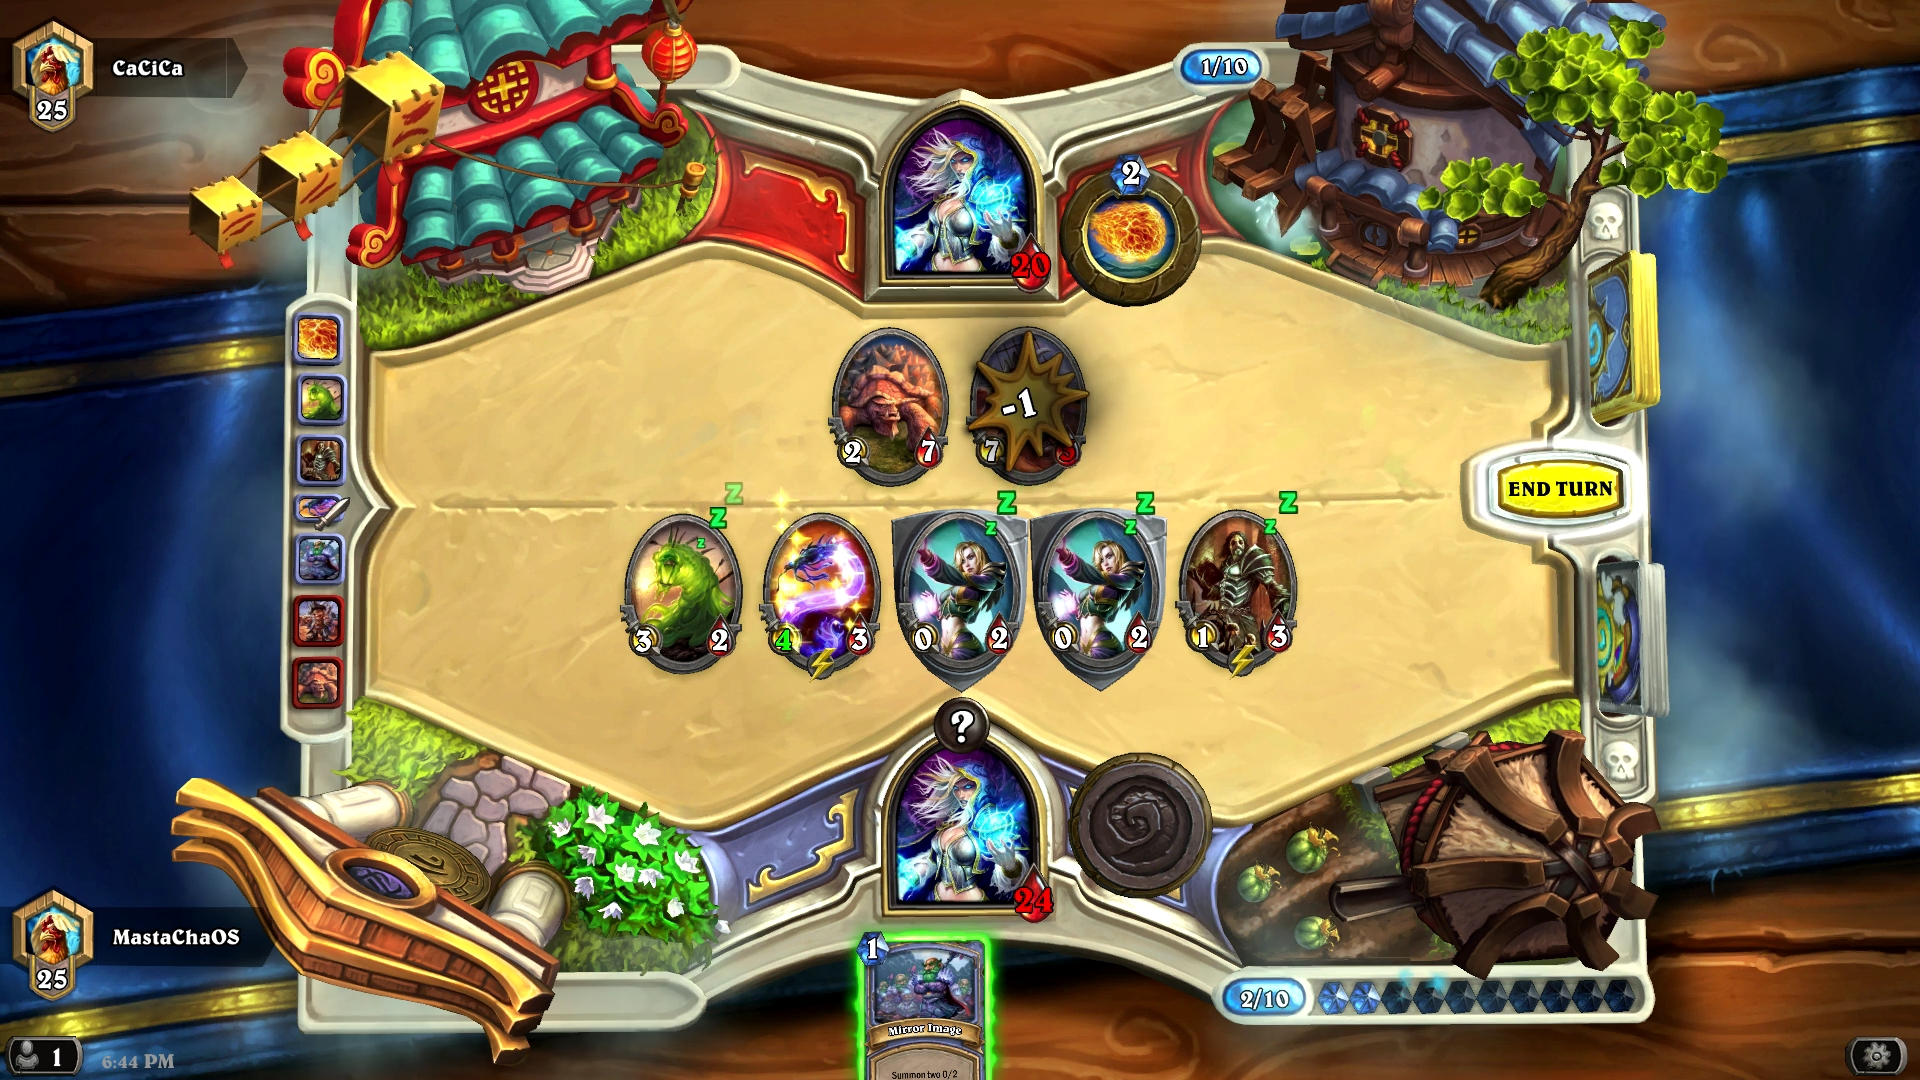 Hearthstone Ranked Match: Mage vs Mage